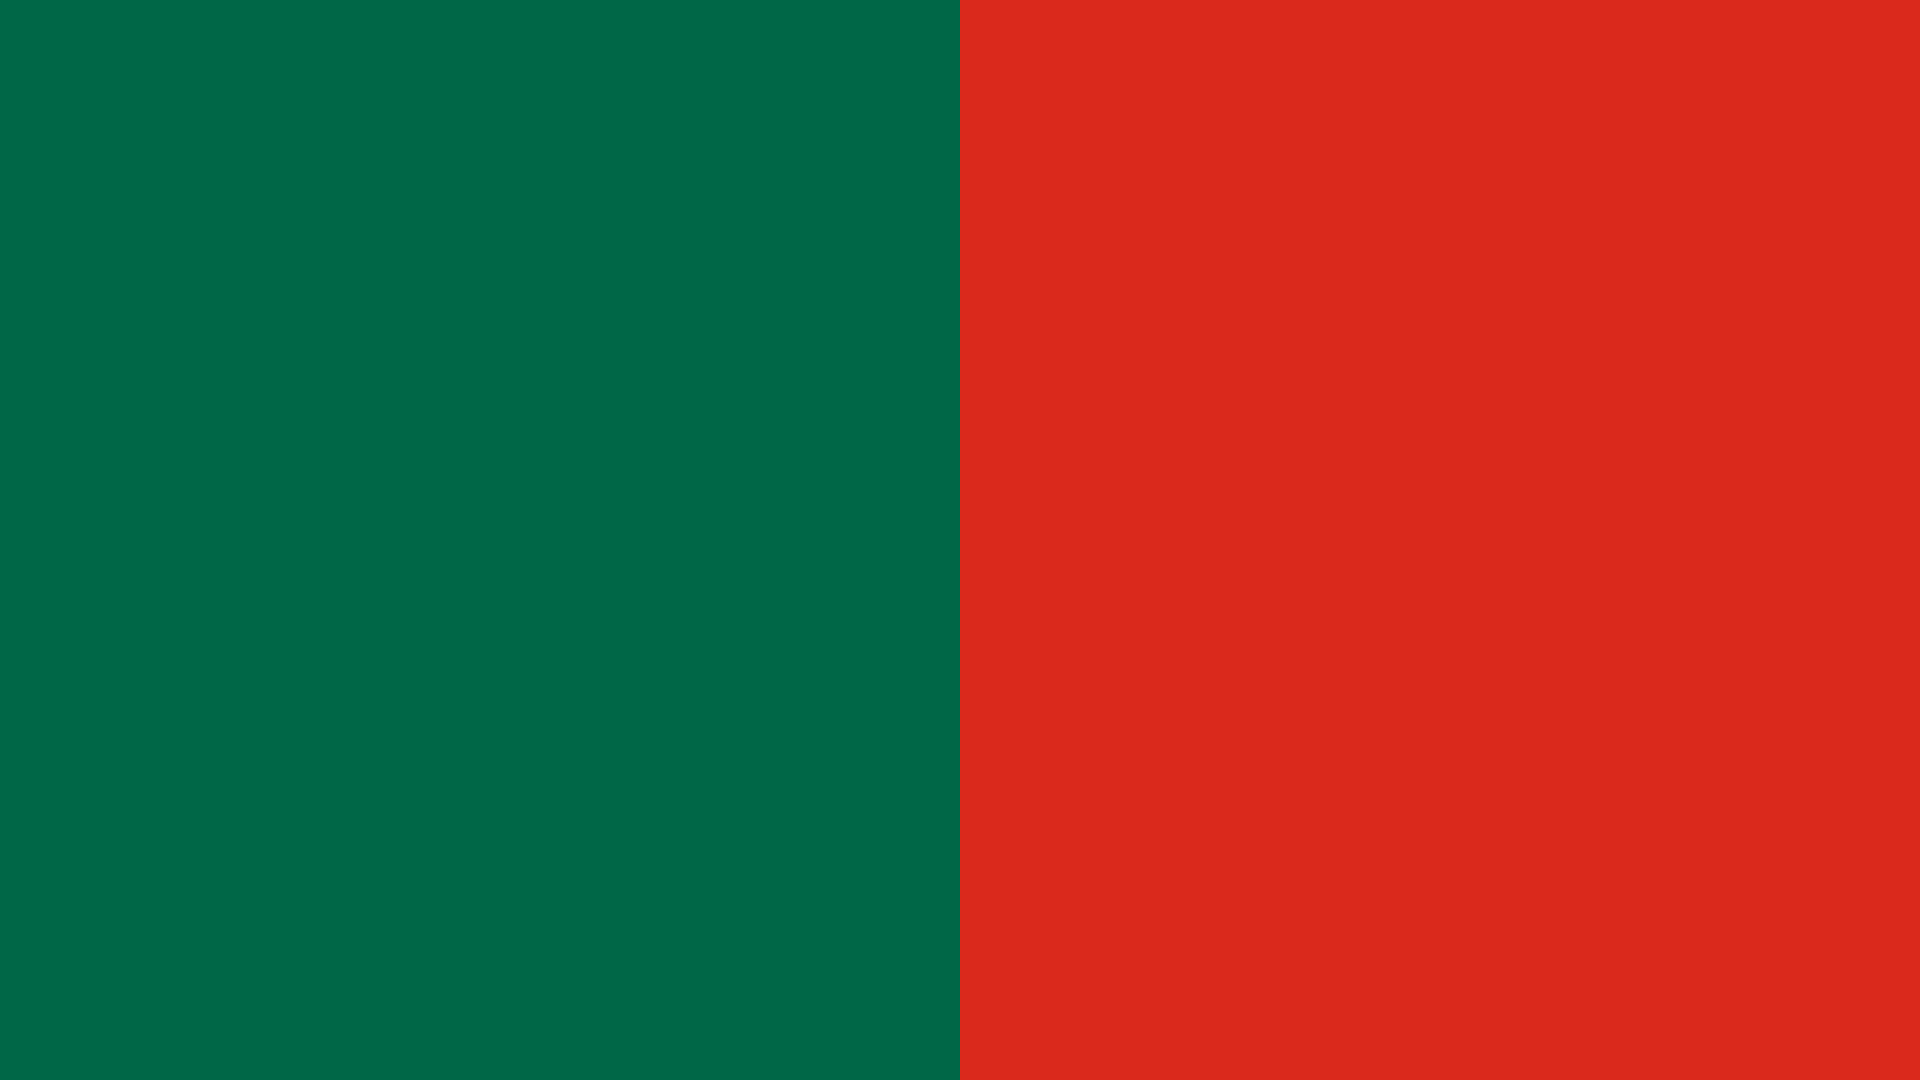 Bangladesh Flag Colors